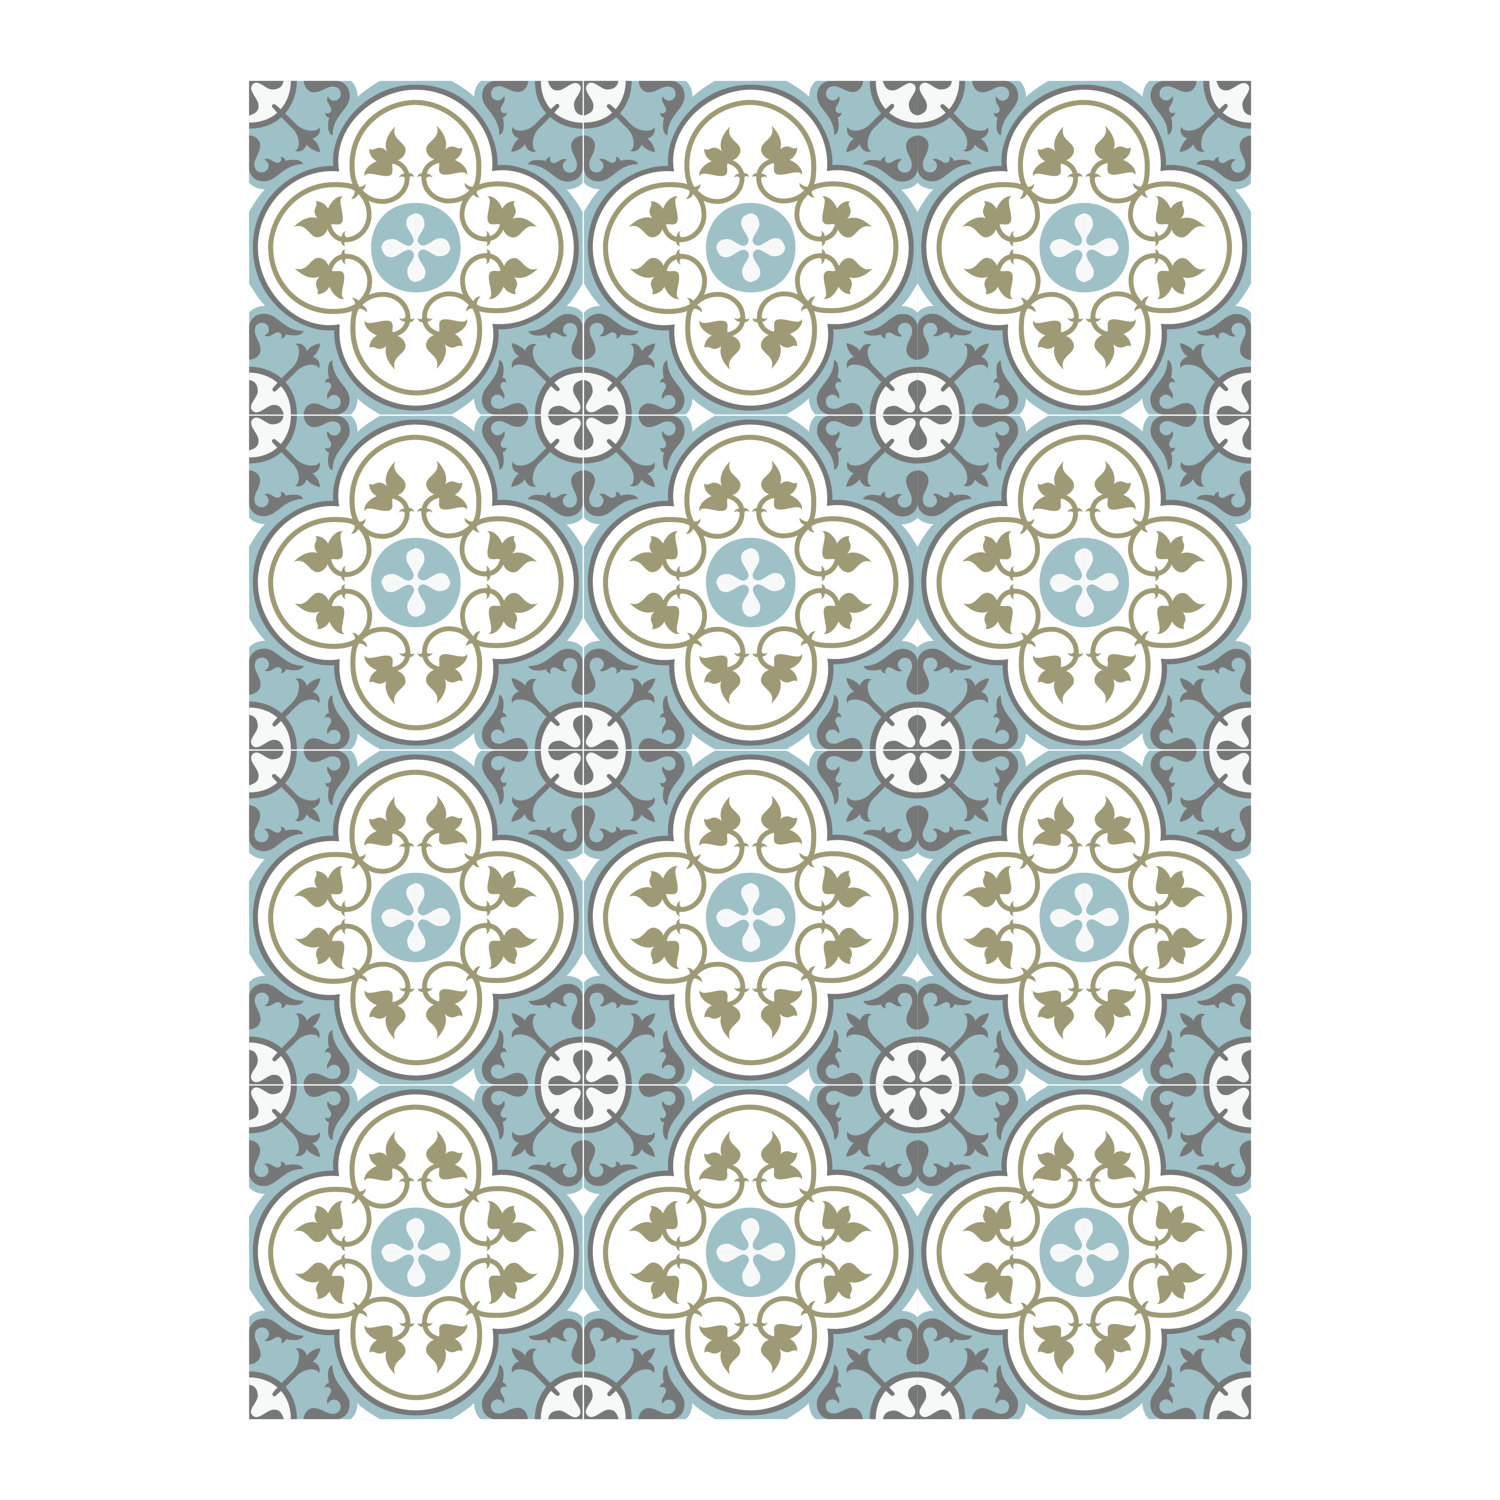 floor-tile-decalsstickers-vinyl-decals-vinyl-floor-self-adhesive-tile-stickers-decorative-tile-flooring-removable-stickers-no-178-58a0c4412.jpg